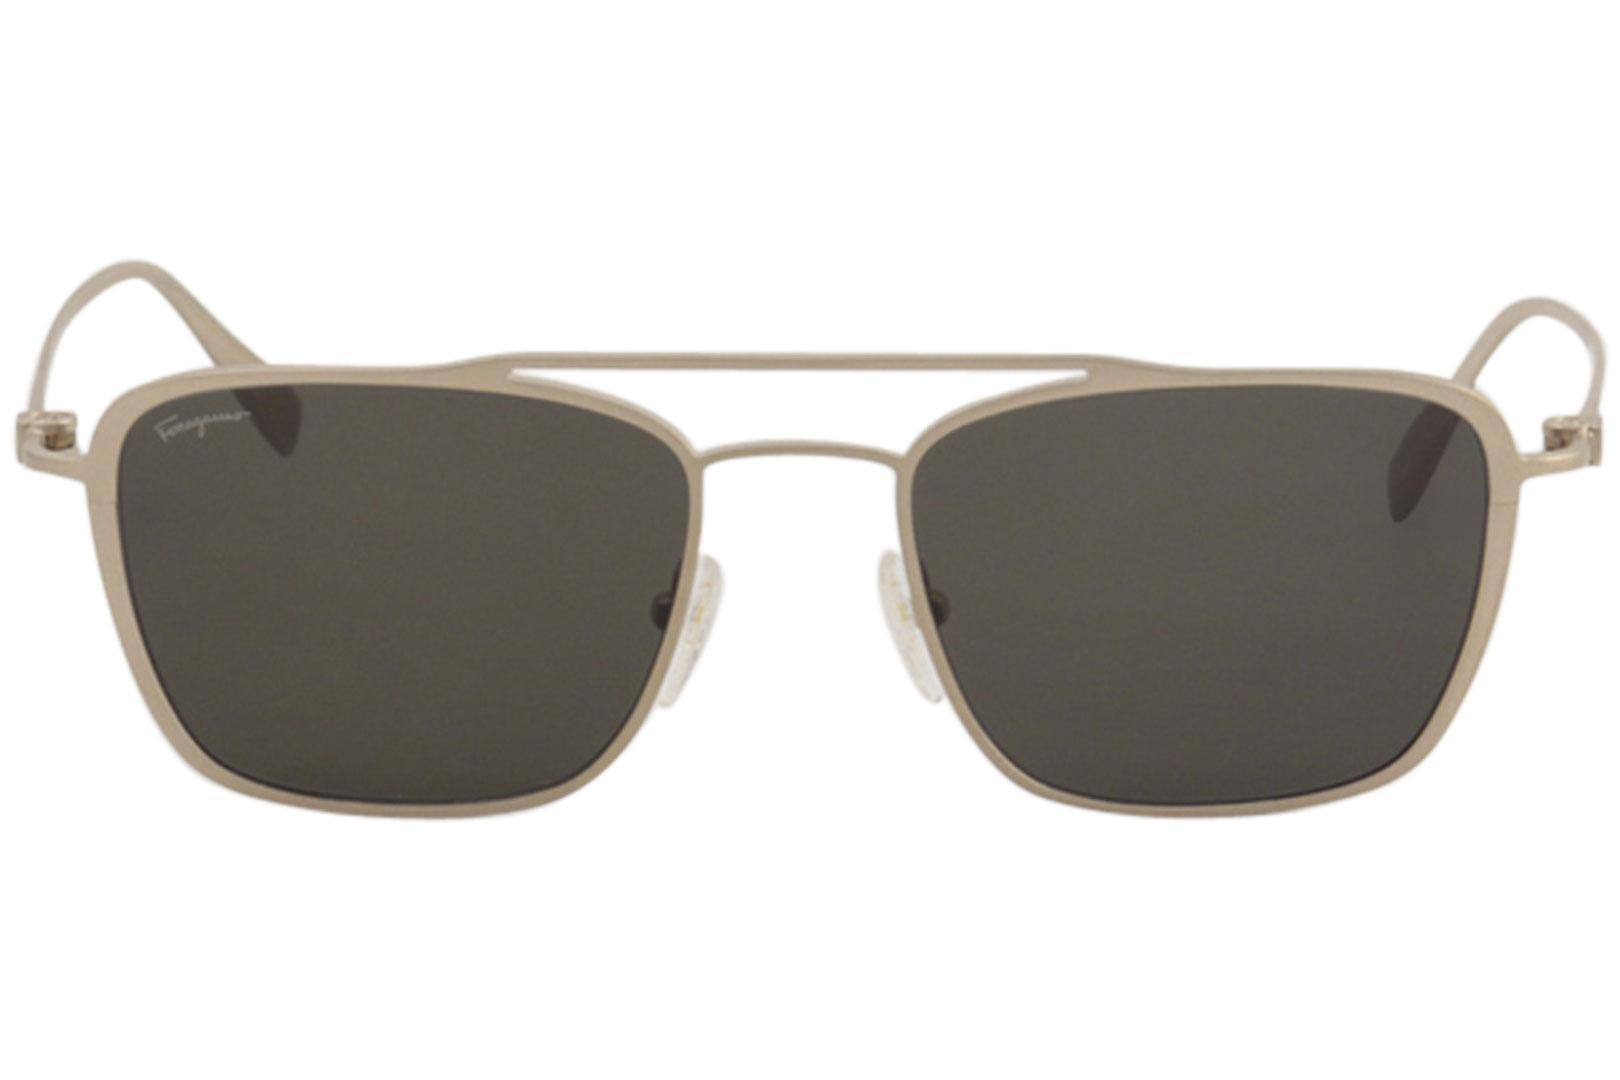 12d6ef84e2 Salvatore Ferragamo Men s SF500S SF 500 S Fashion Pilot Sunglasses by Salvatore  Ferragamo. 12345